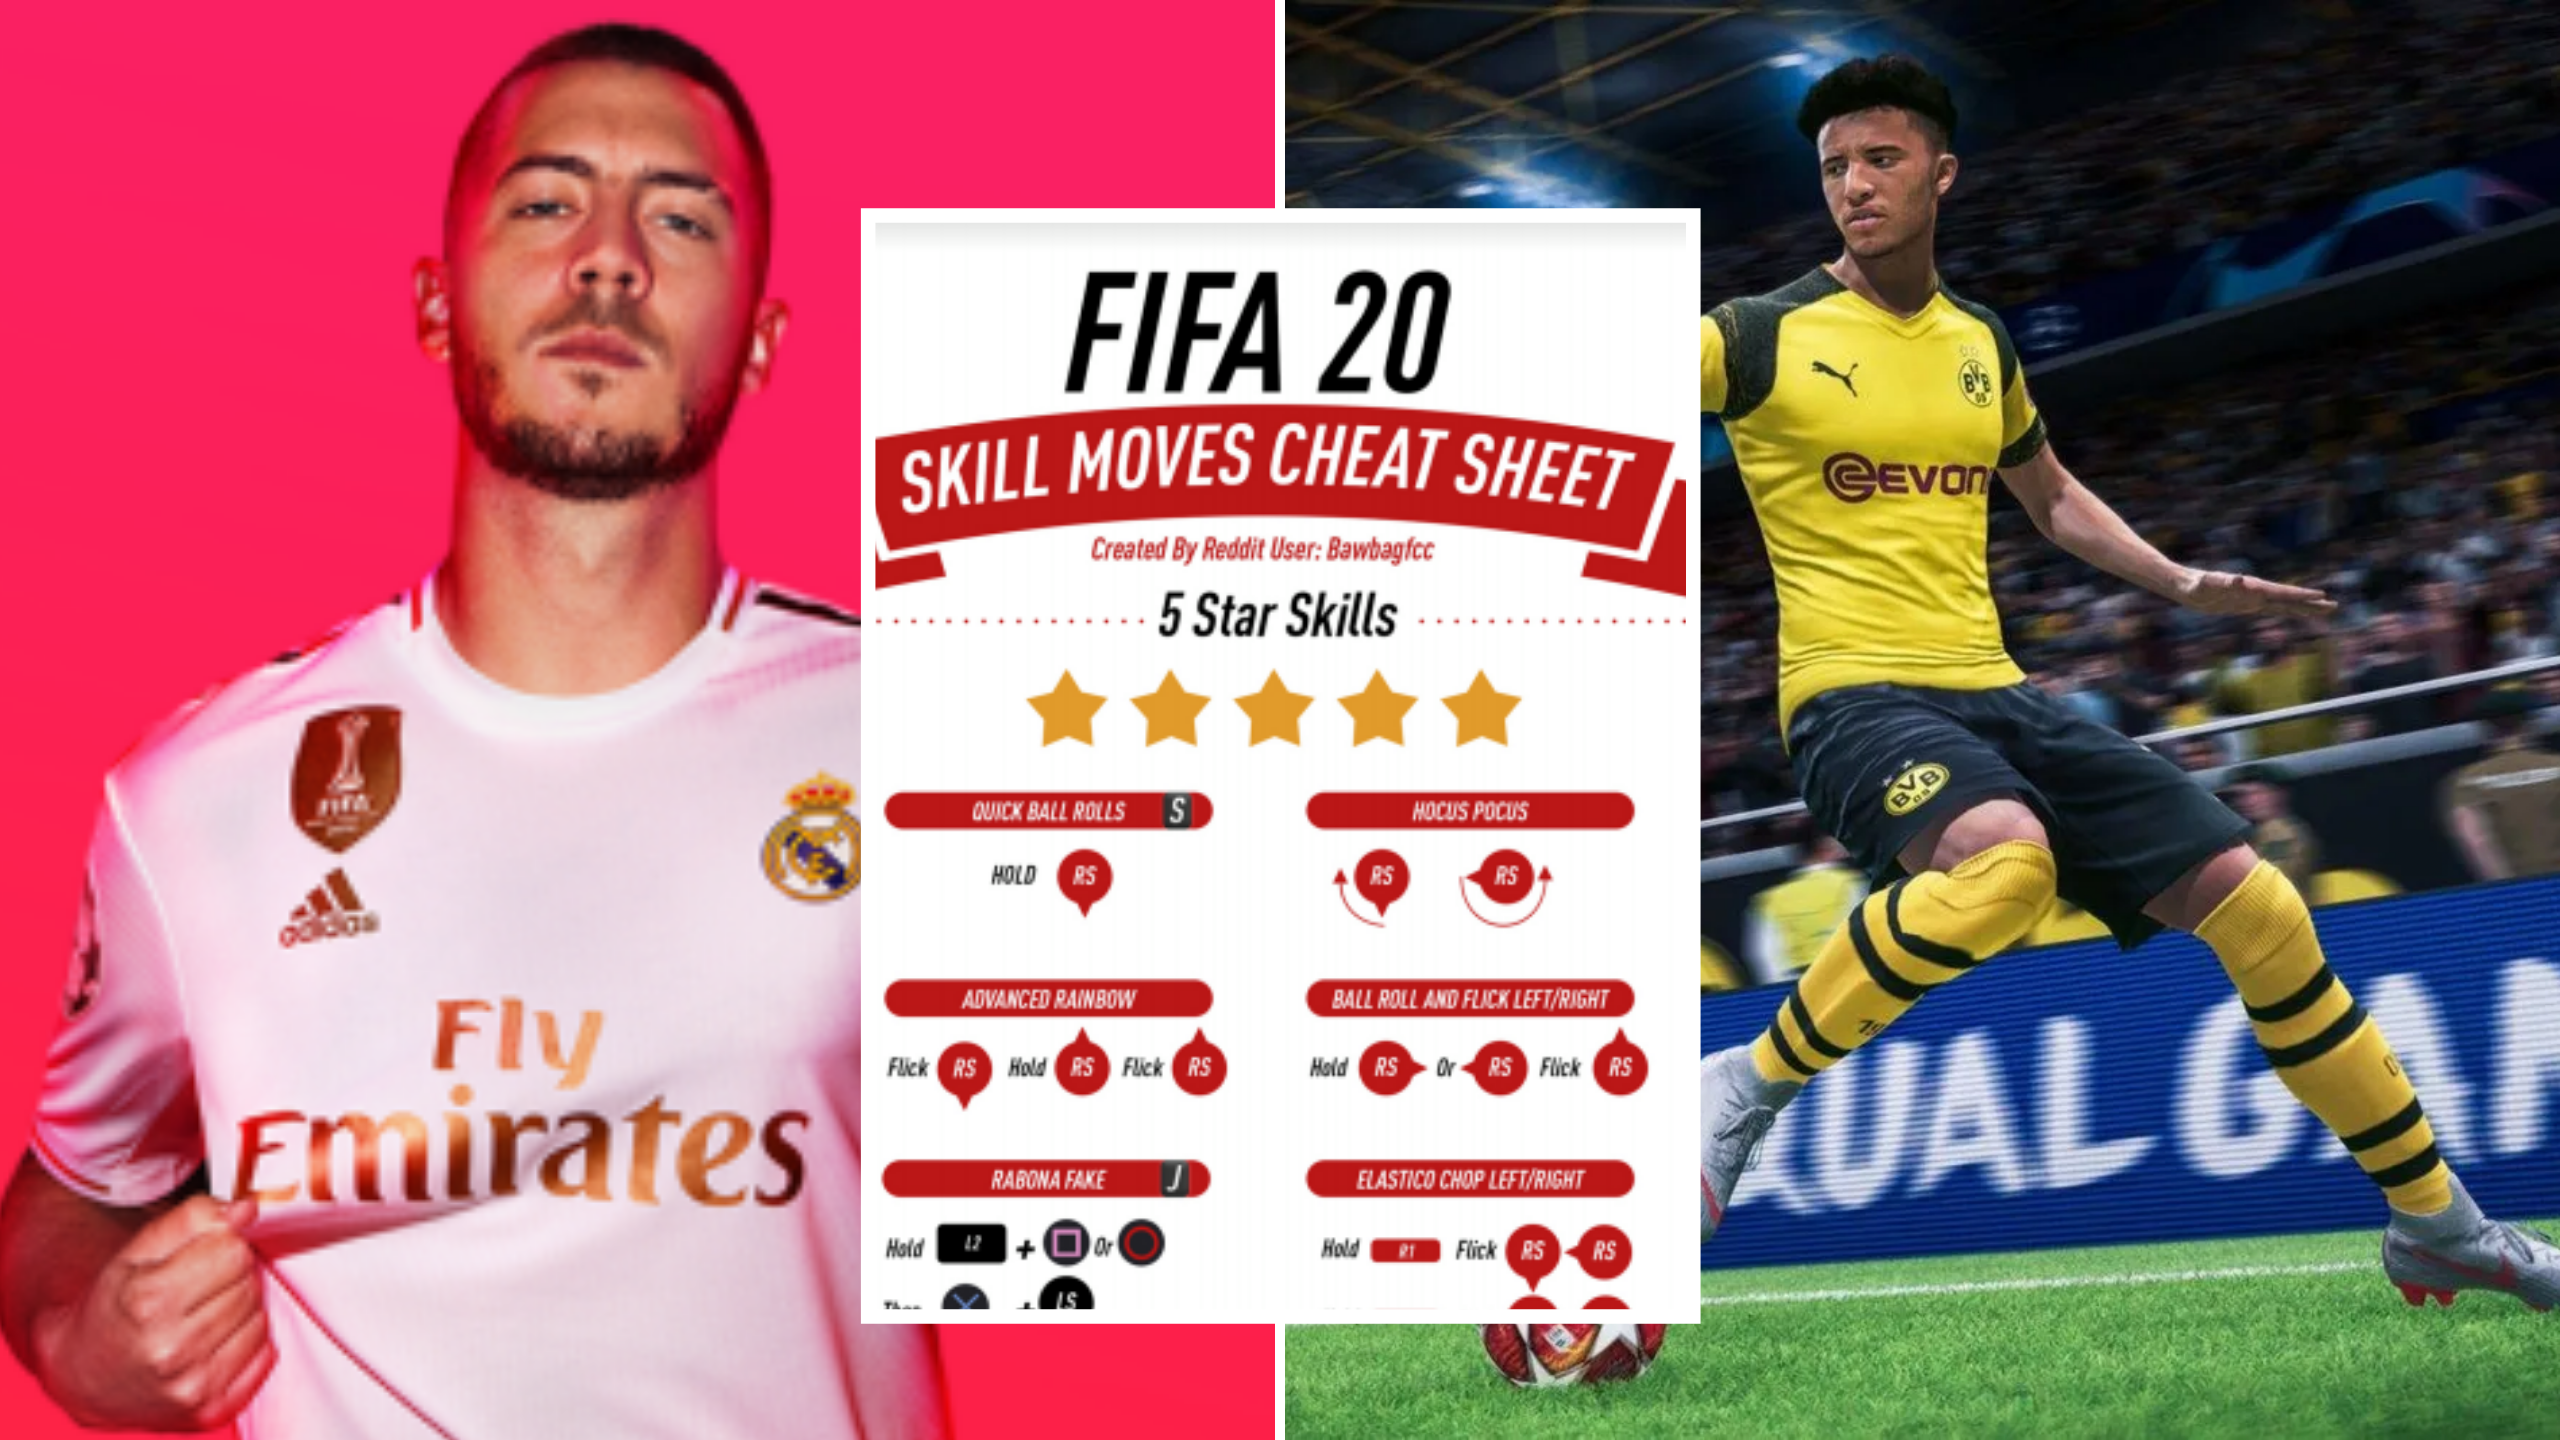 Fifa 20 Visual Cheat Sheets Will Help Anyone Master Five Star Skills Sportbible